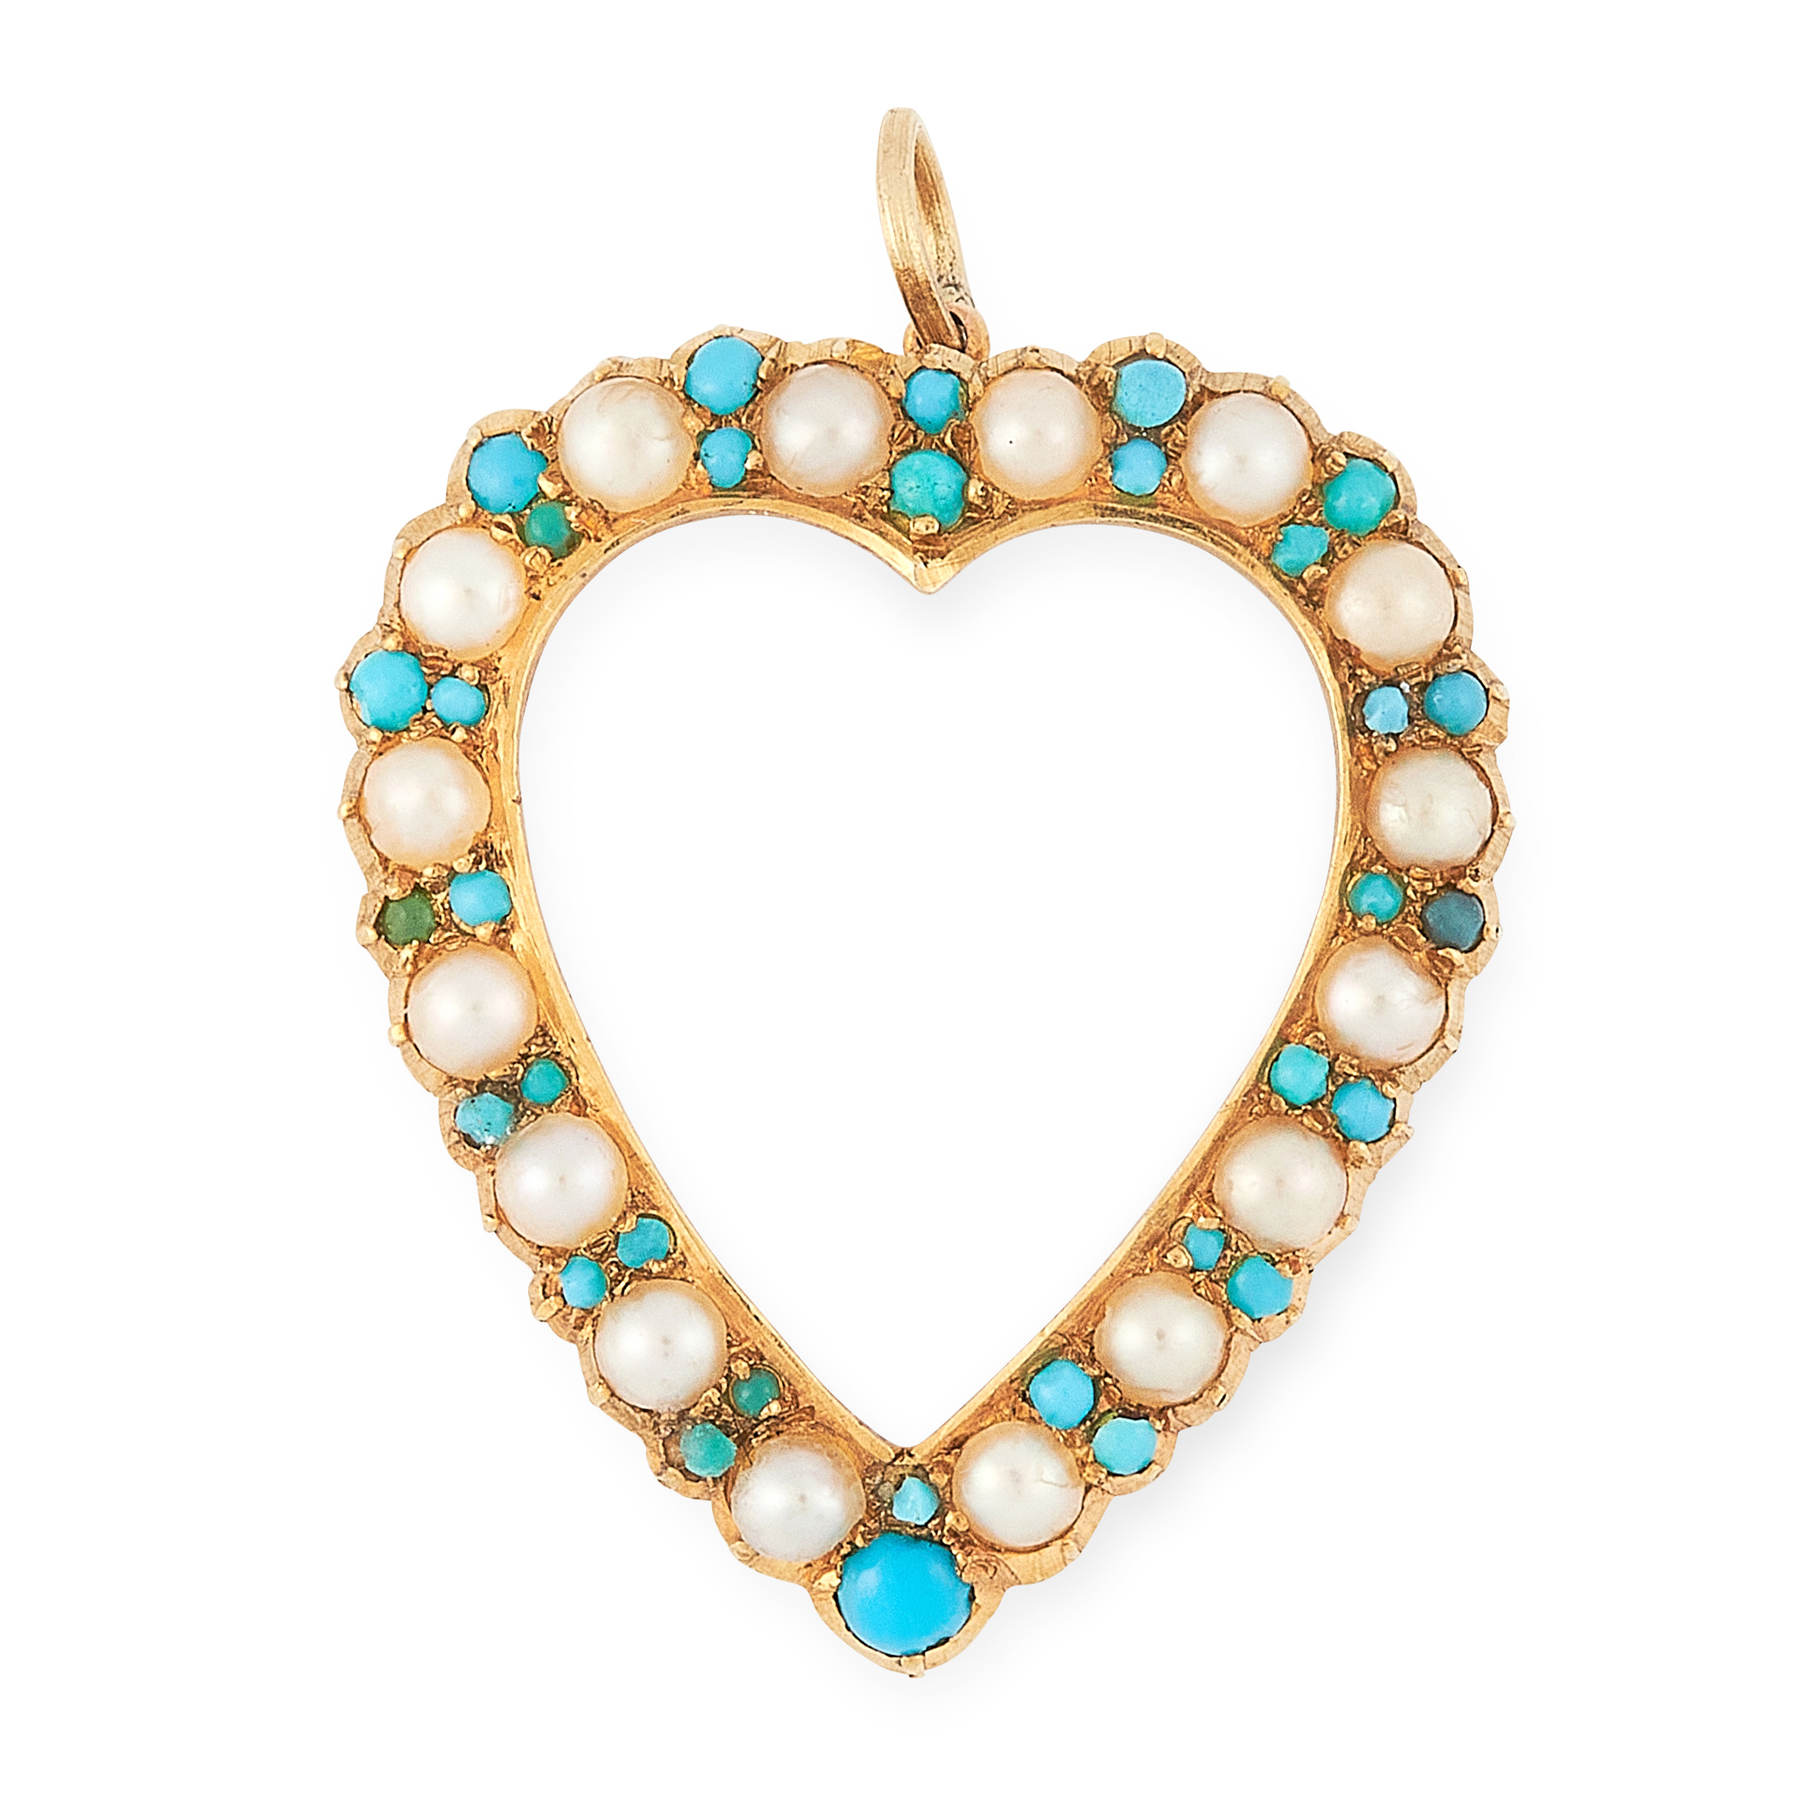 AN ANTIQUE TURQUOISE AND PEARL HEART PENDANT in 15ct yellow gold, designed as an open heart set with